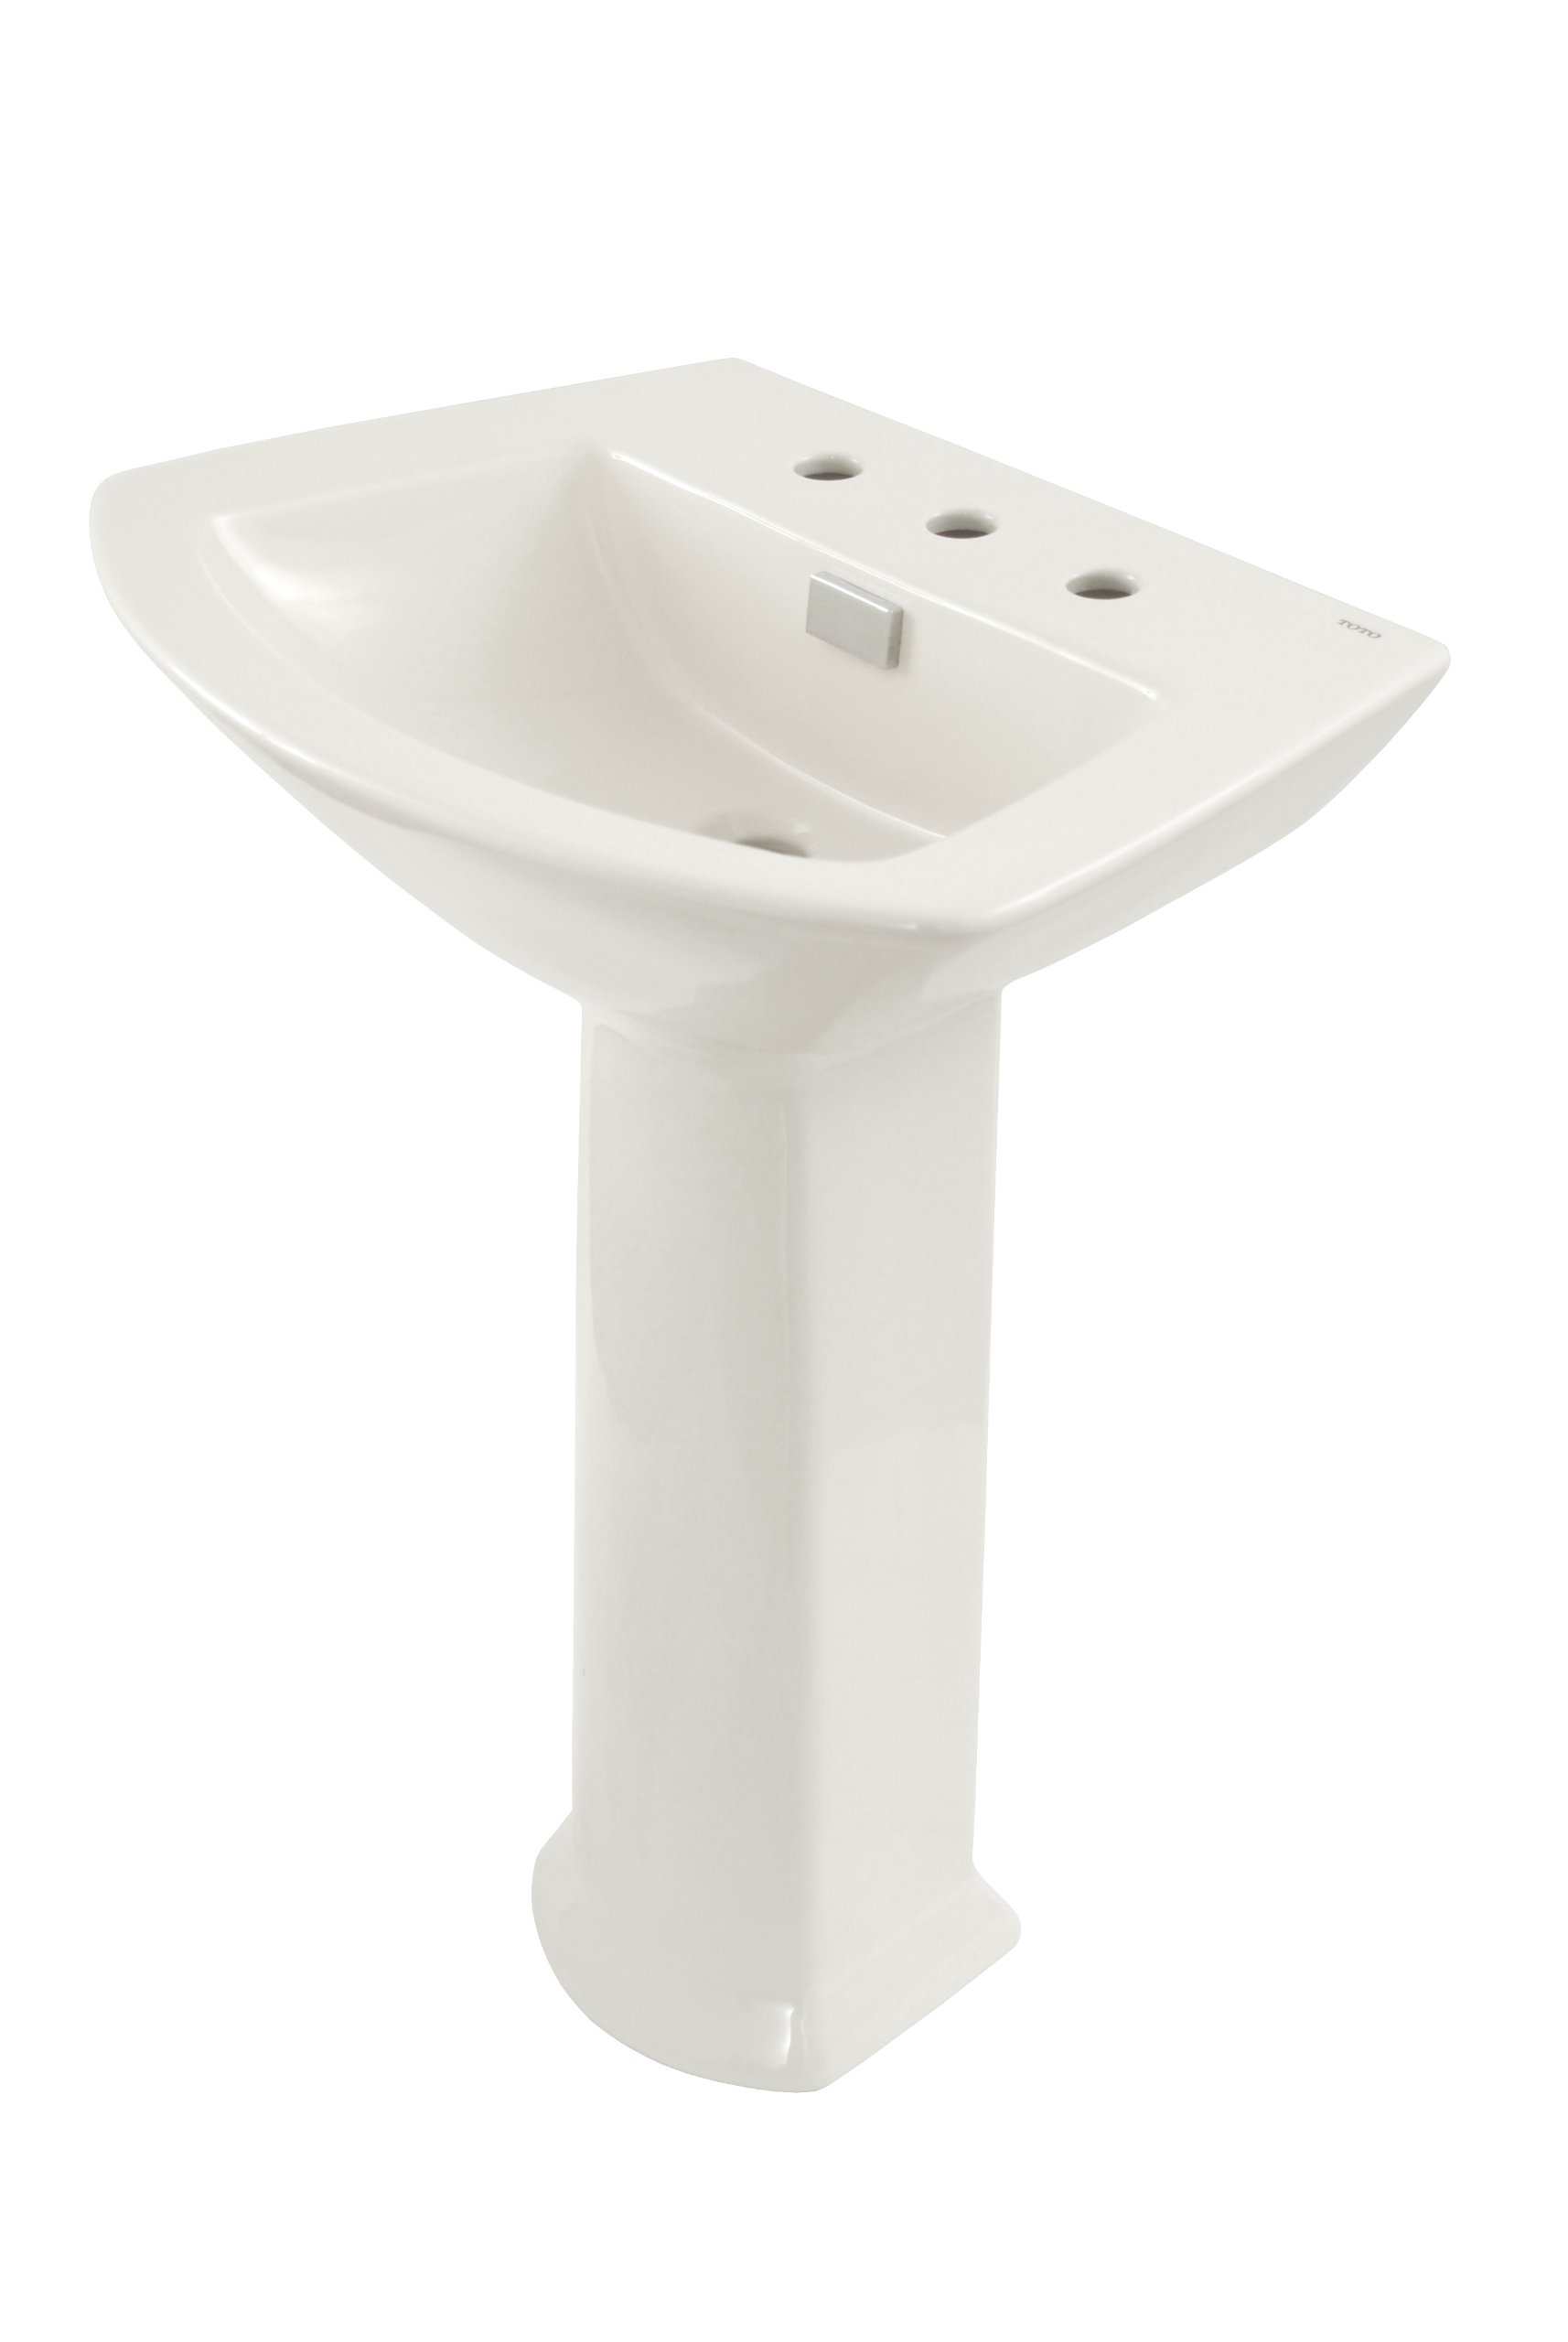 TOTO LPT960.8#01 Soiree Lavatory and Pedestal with 8-Inch Centers, Cotton White